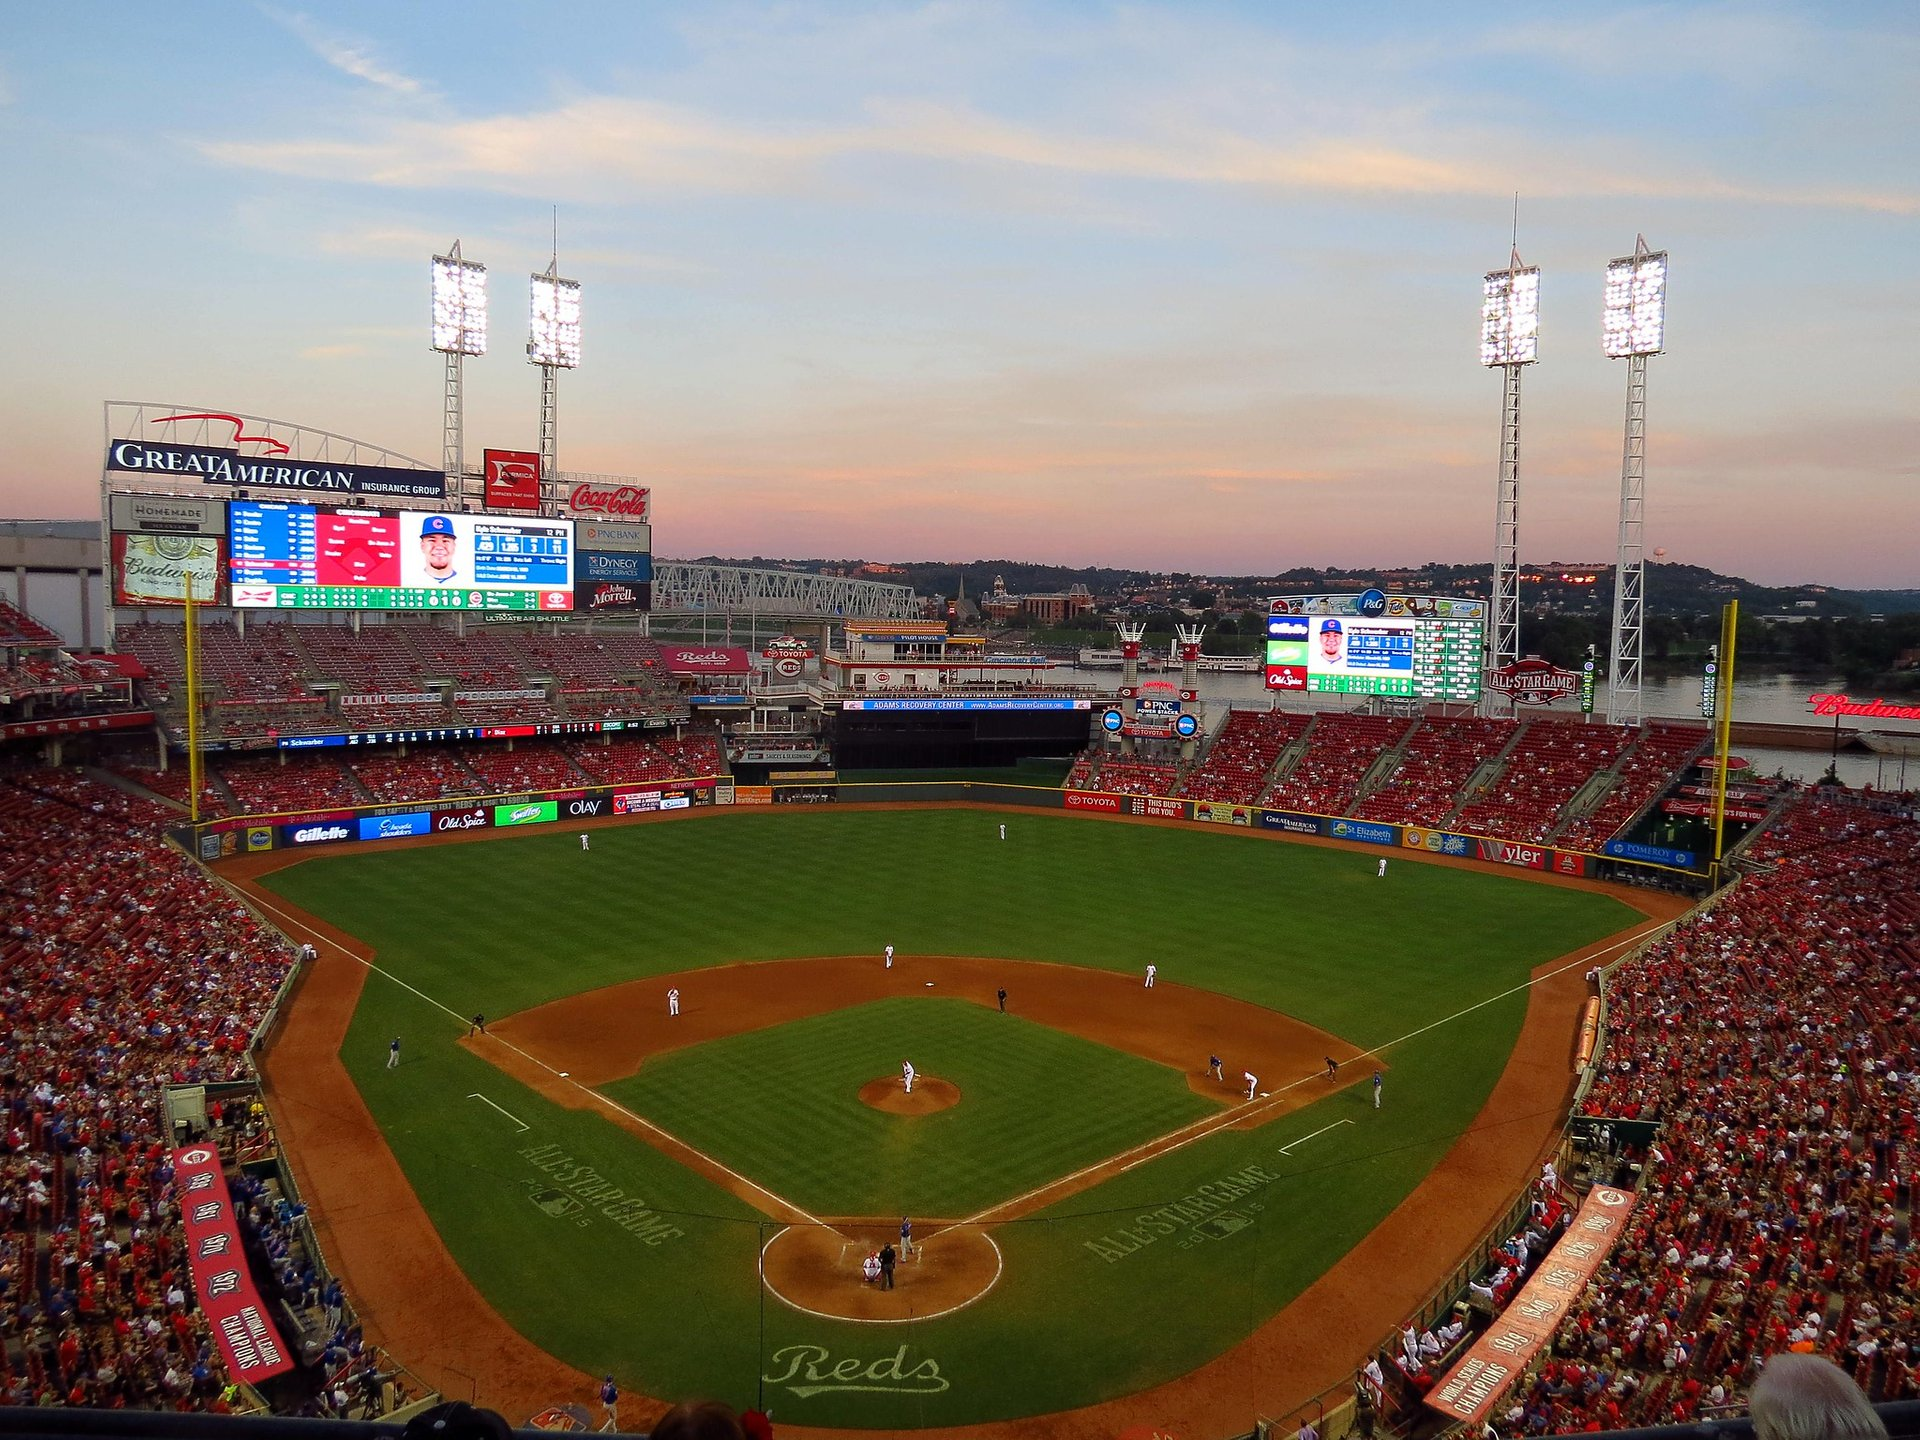 Chicago Cubs @ Cincinnati Reds, Great American Ball Park  2020